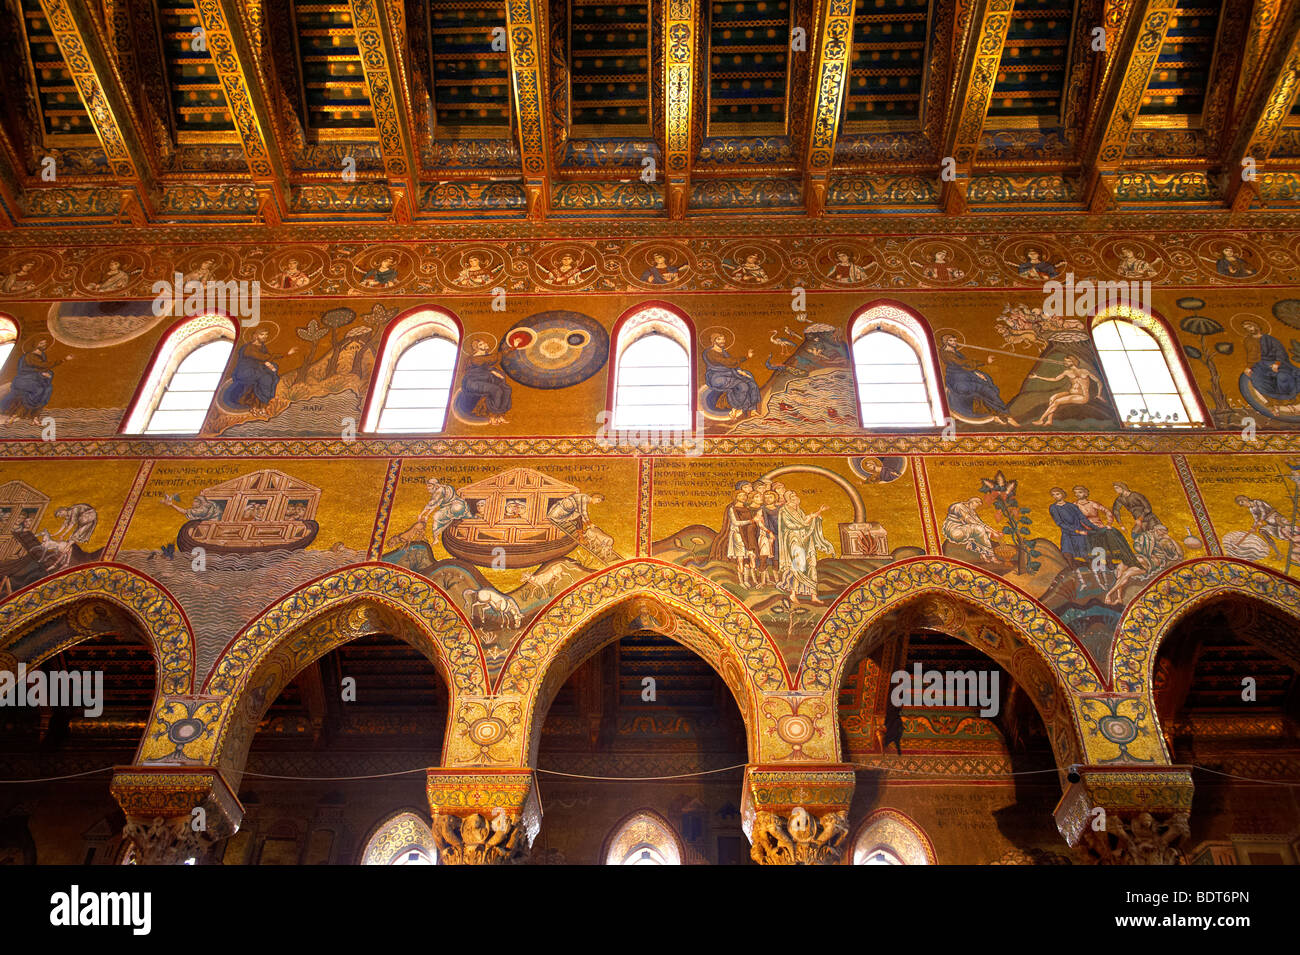 Byzantine mosaics depicting scenes from the Bible in the Cathedral of Monreale - Palermo - Sicily - Stock Image